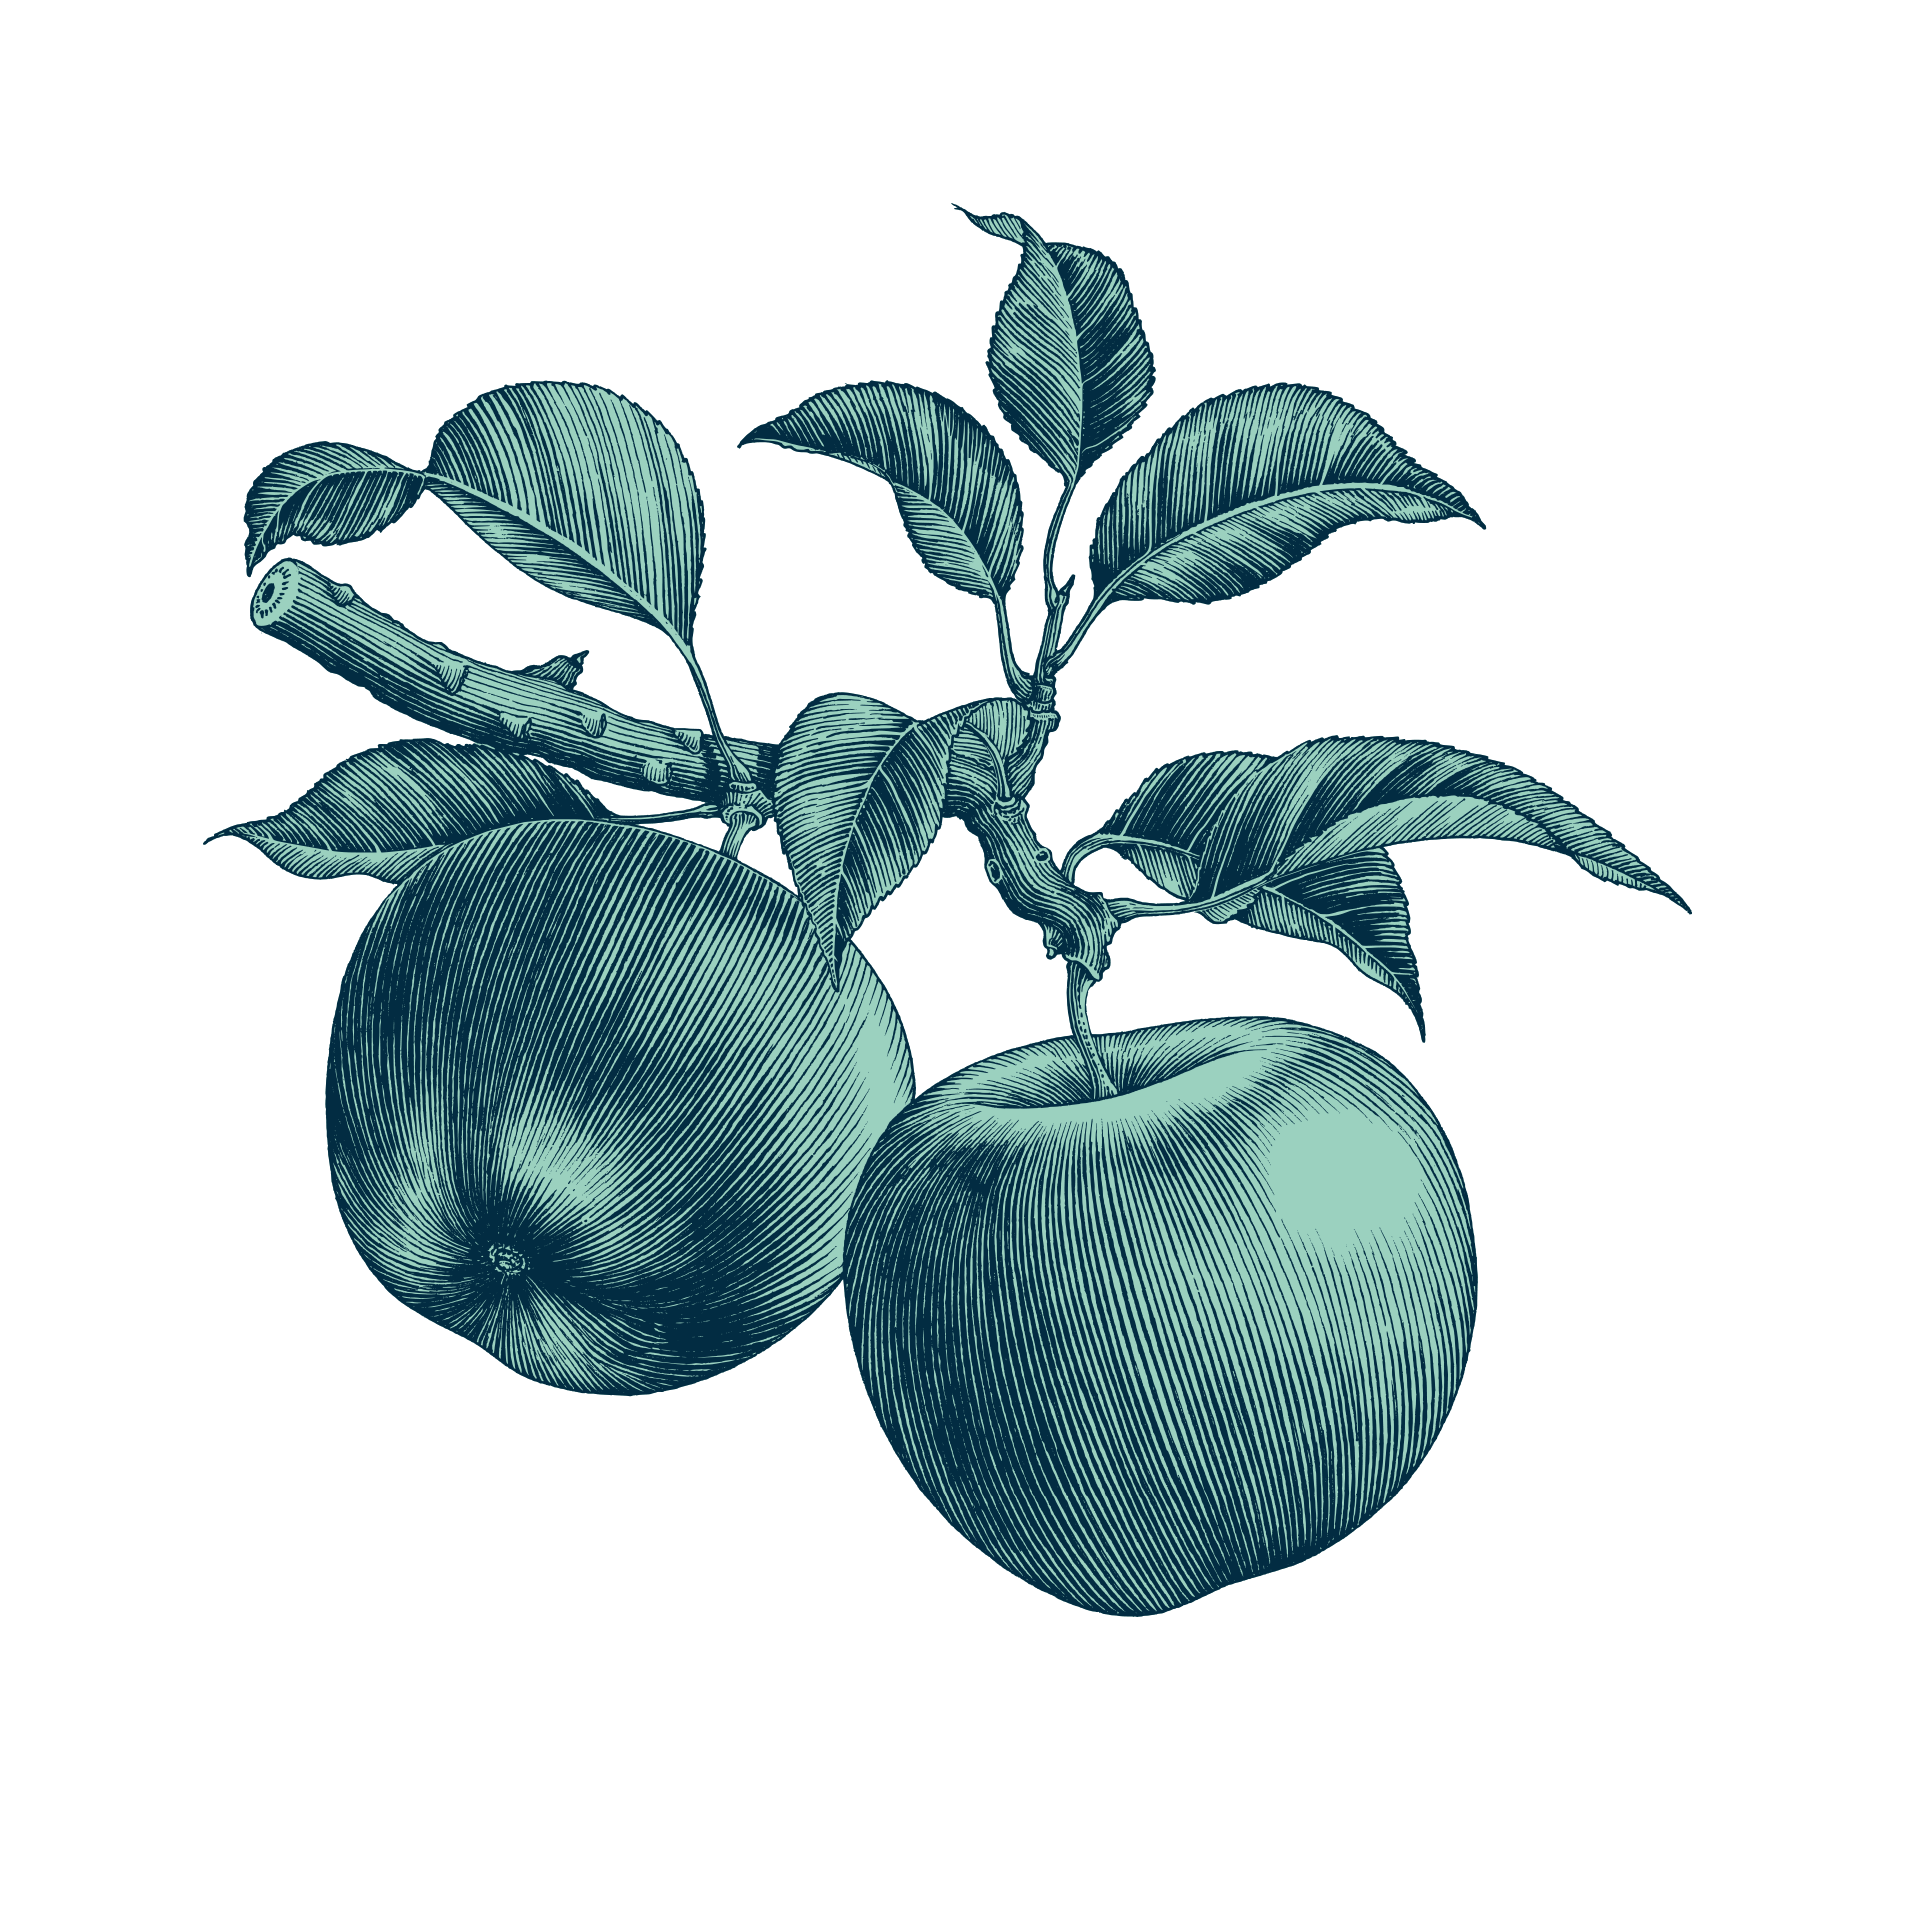 Illustration de pommes